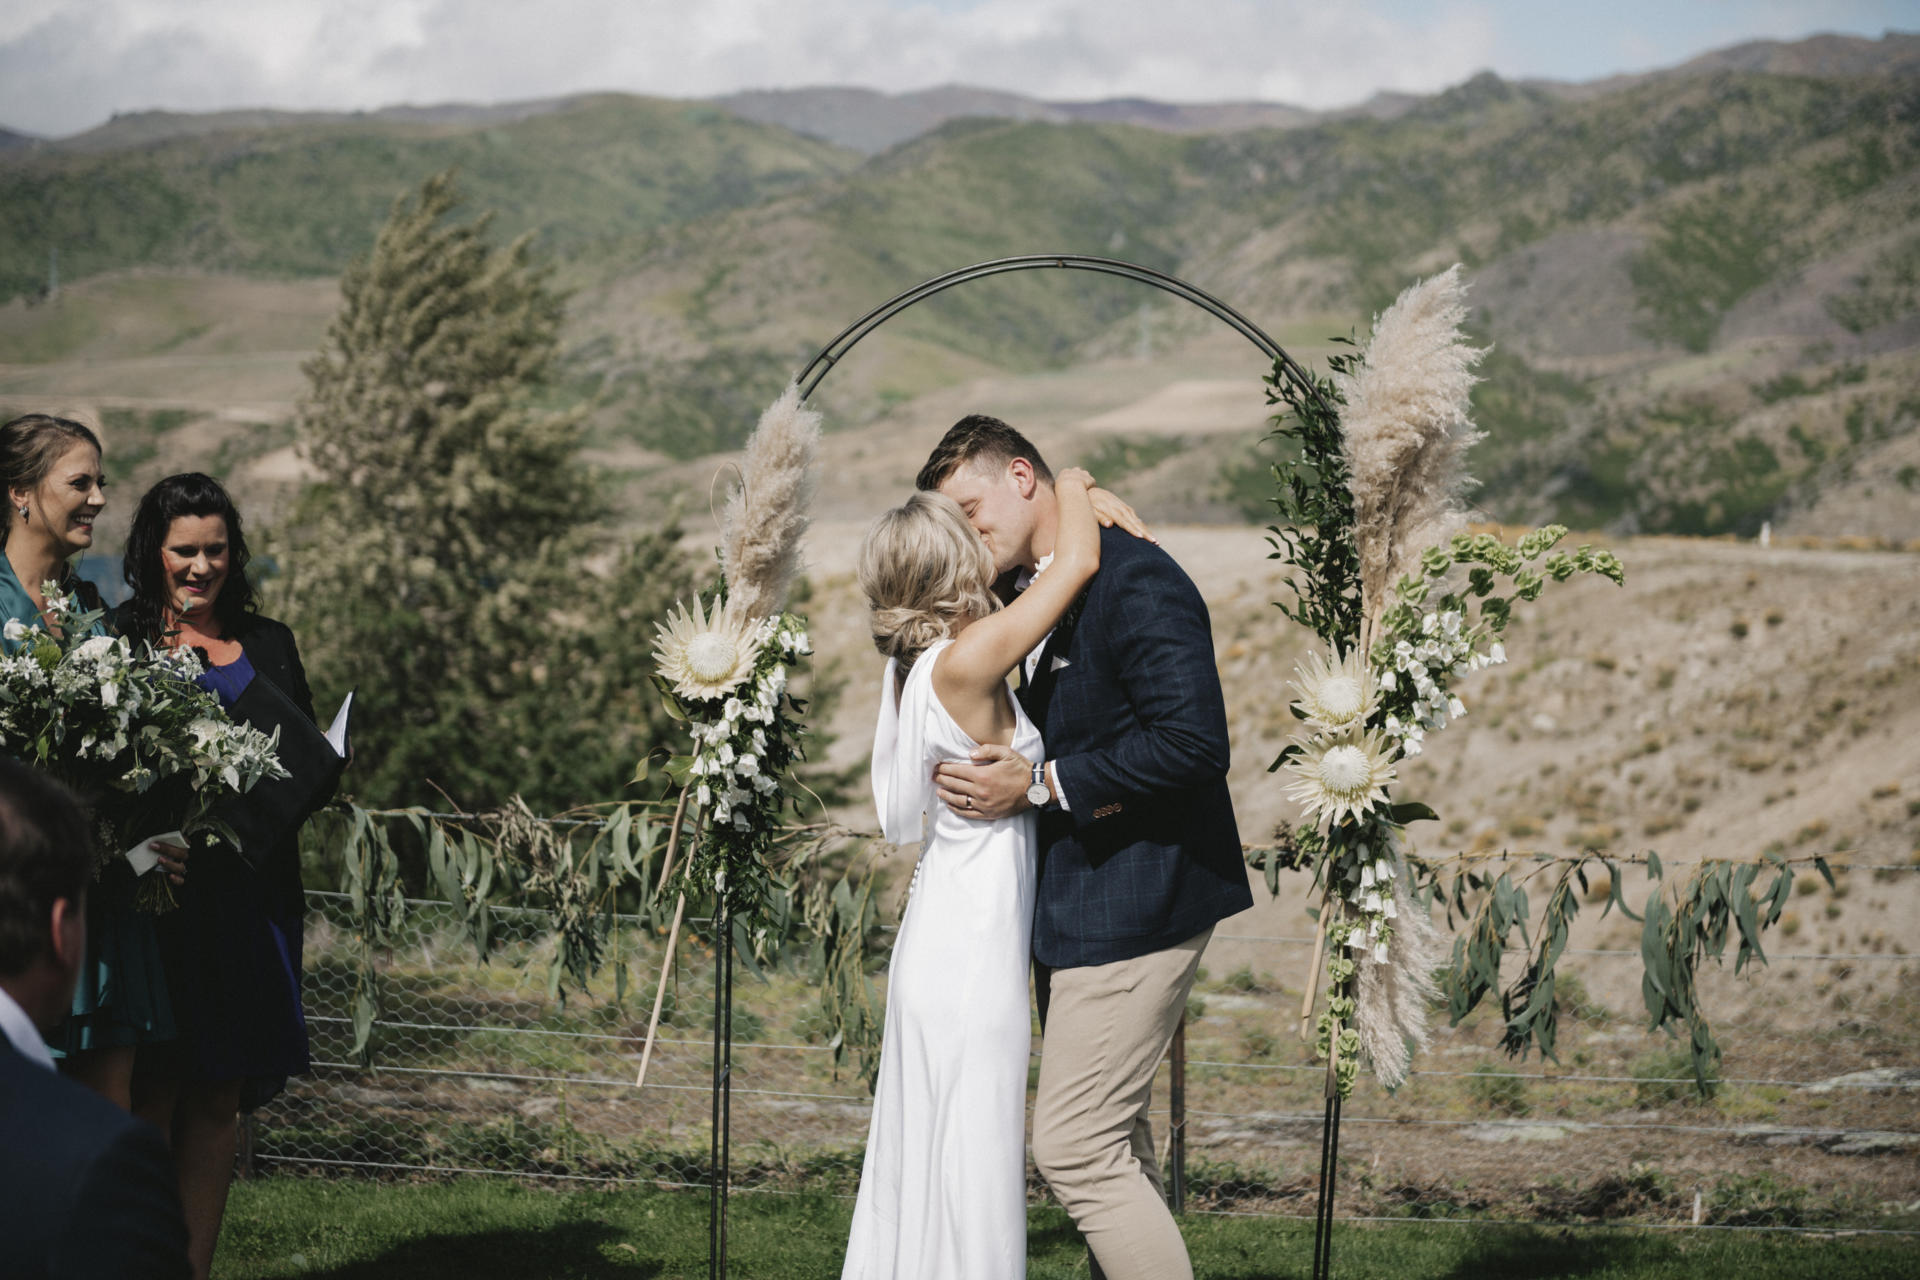 Wanaka and Queenstown wedding styling, planning and florals